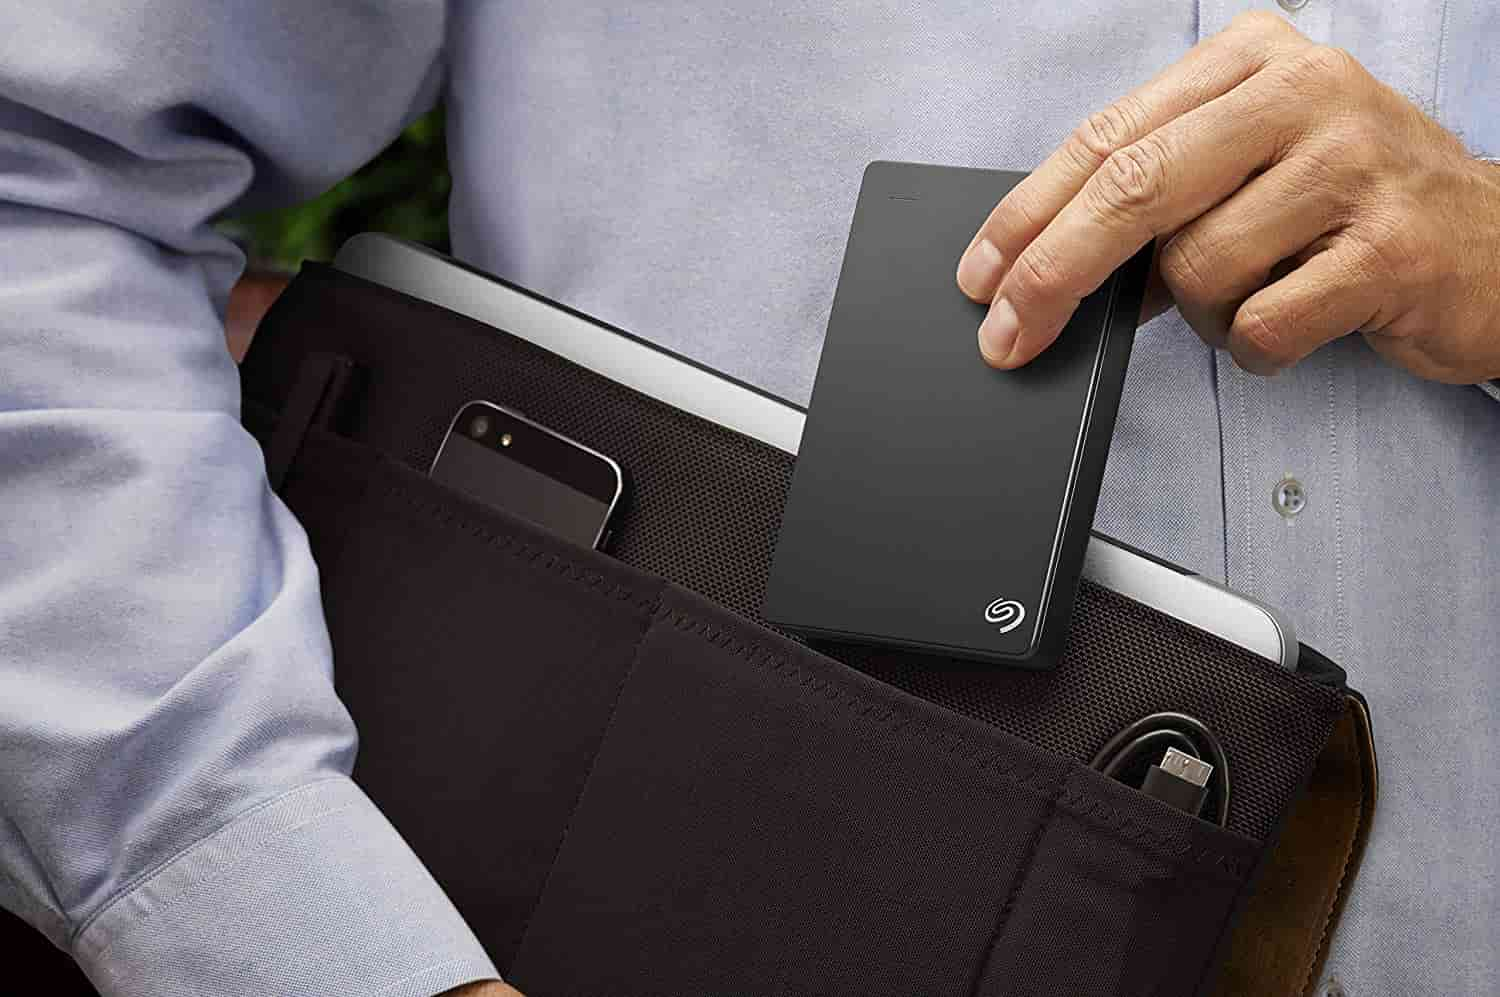 Seagate Backup Plus External Drive Size